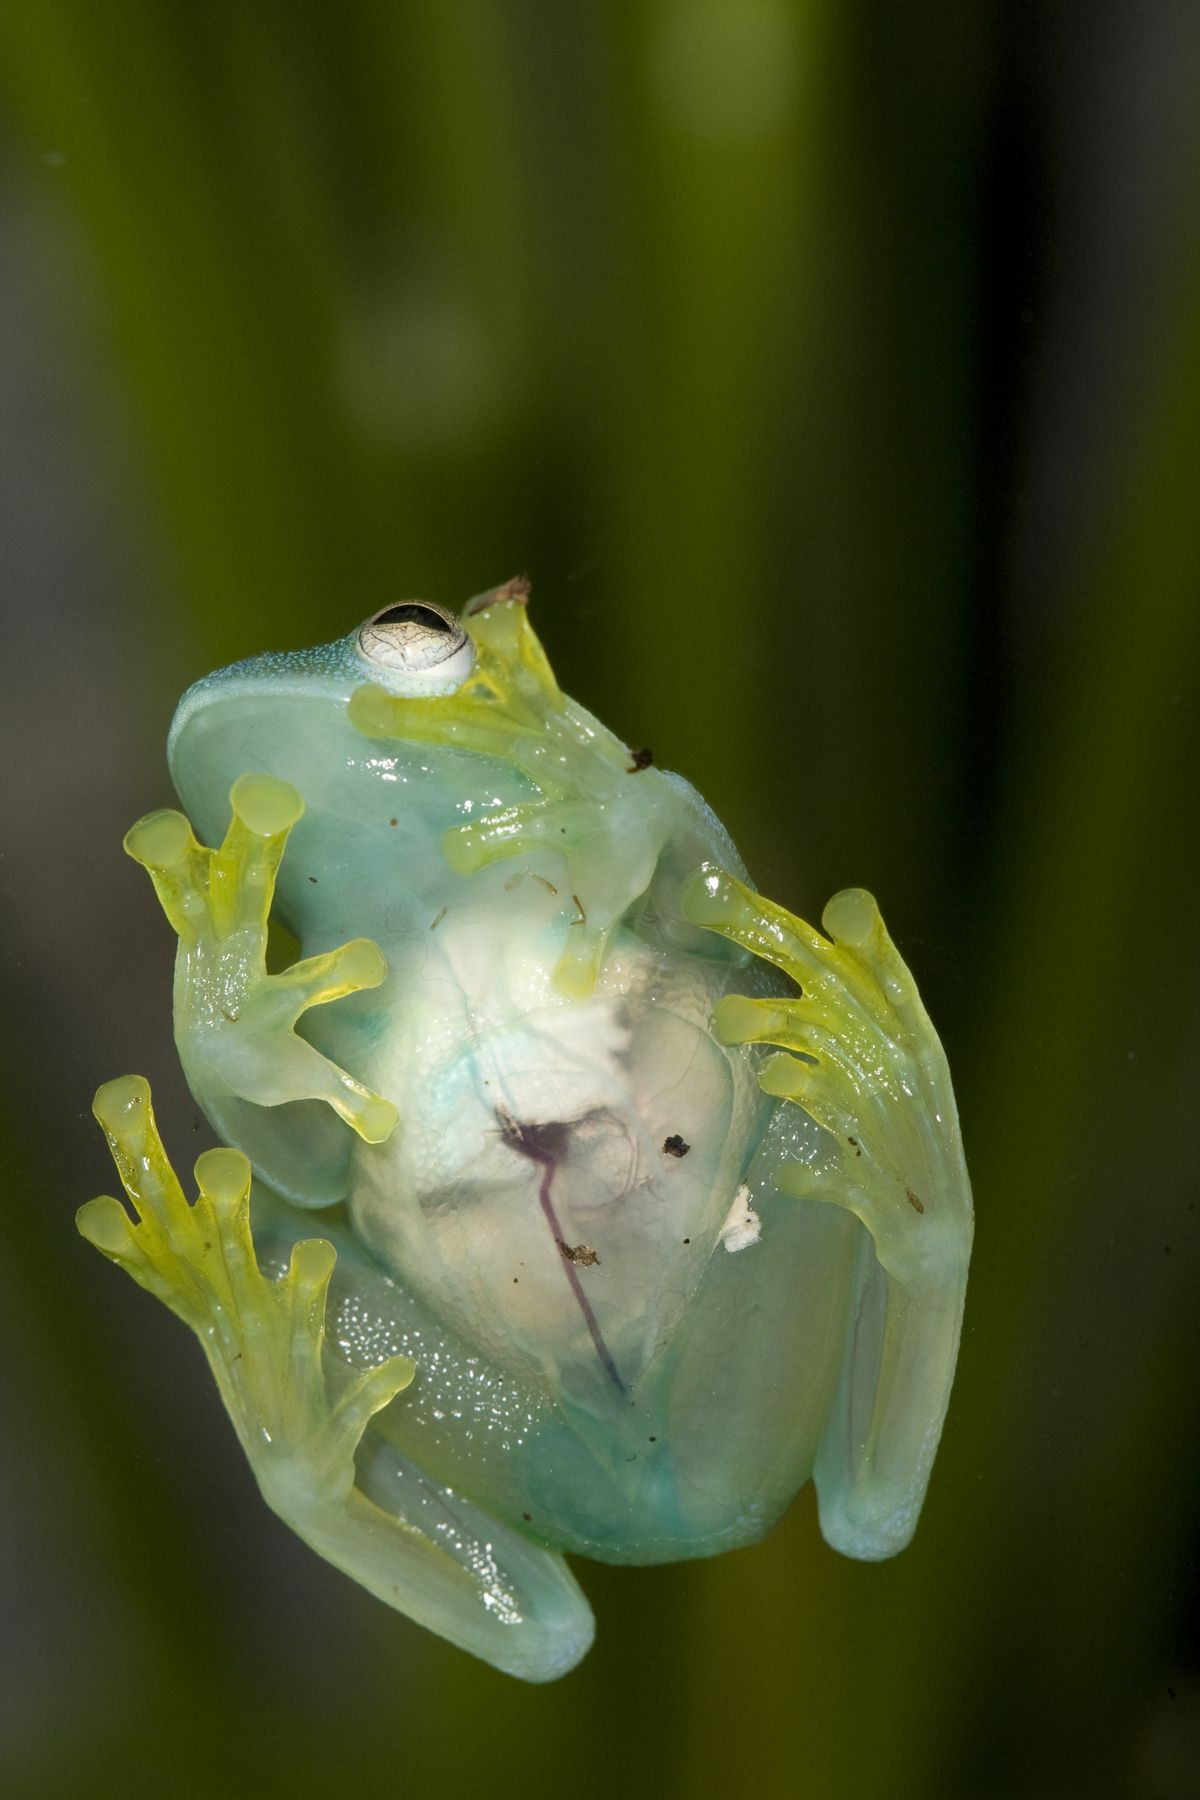 Glass frogs have such transparent skin that